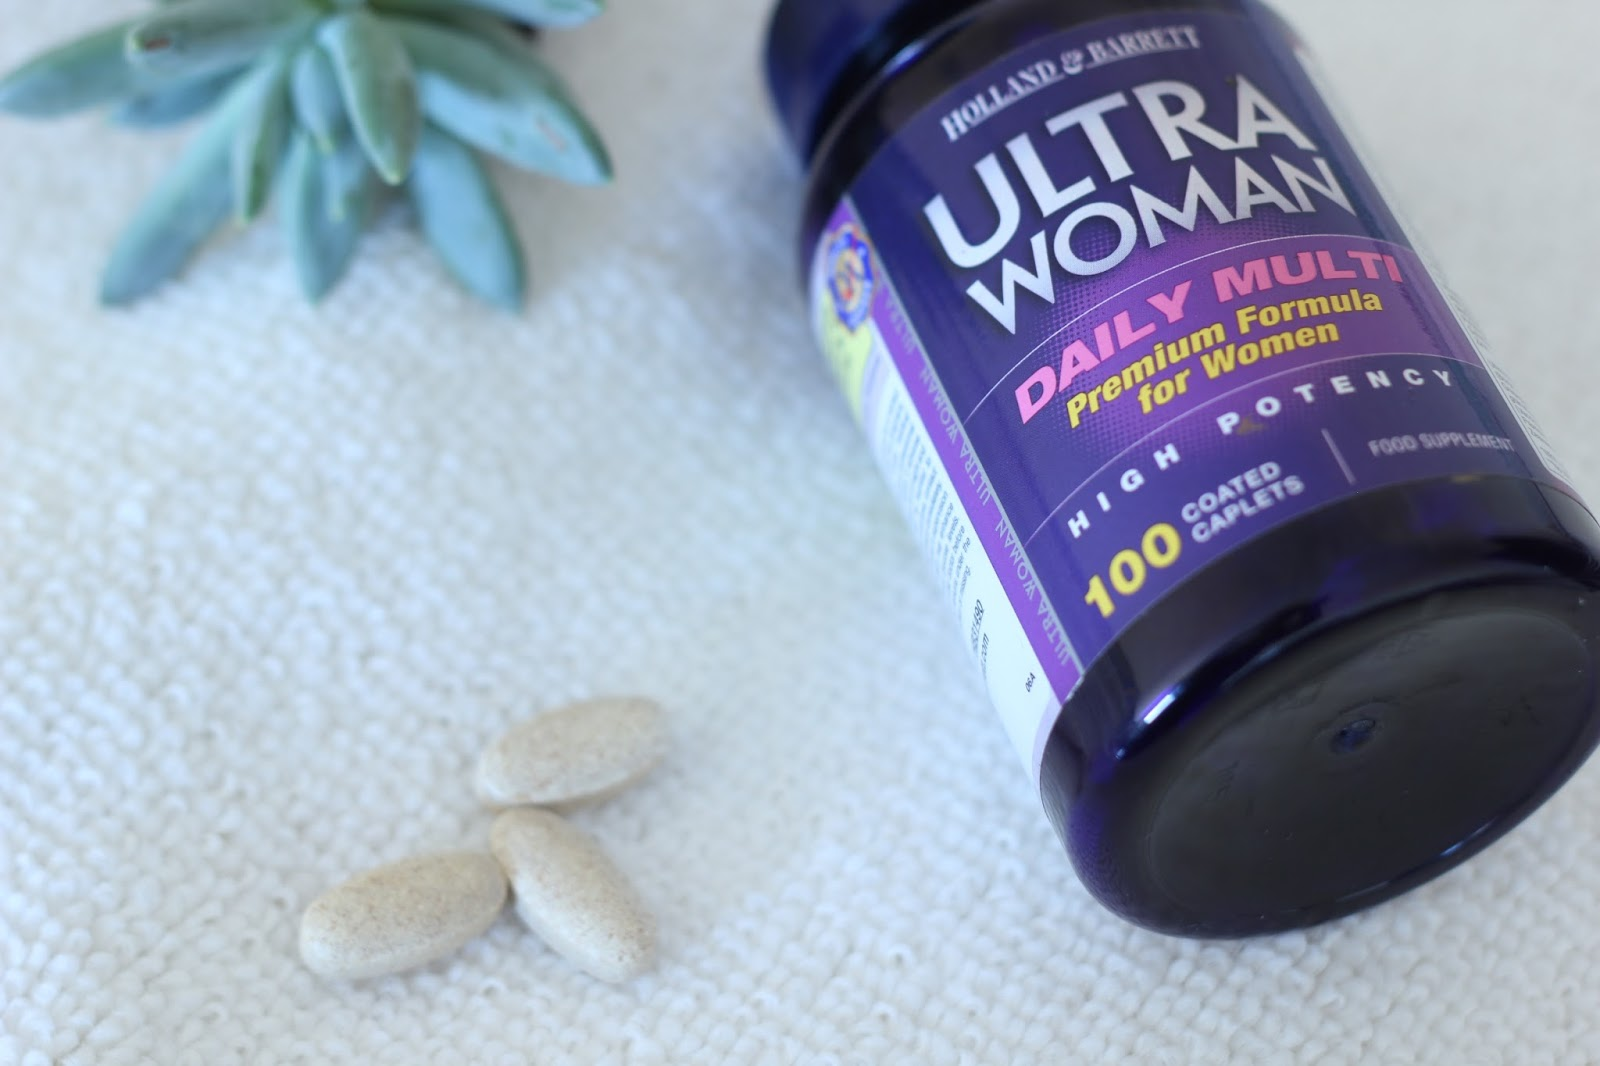 Picture of vitamin tablets or caplets for women